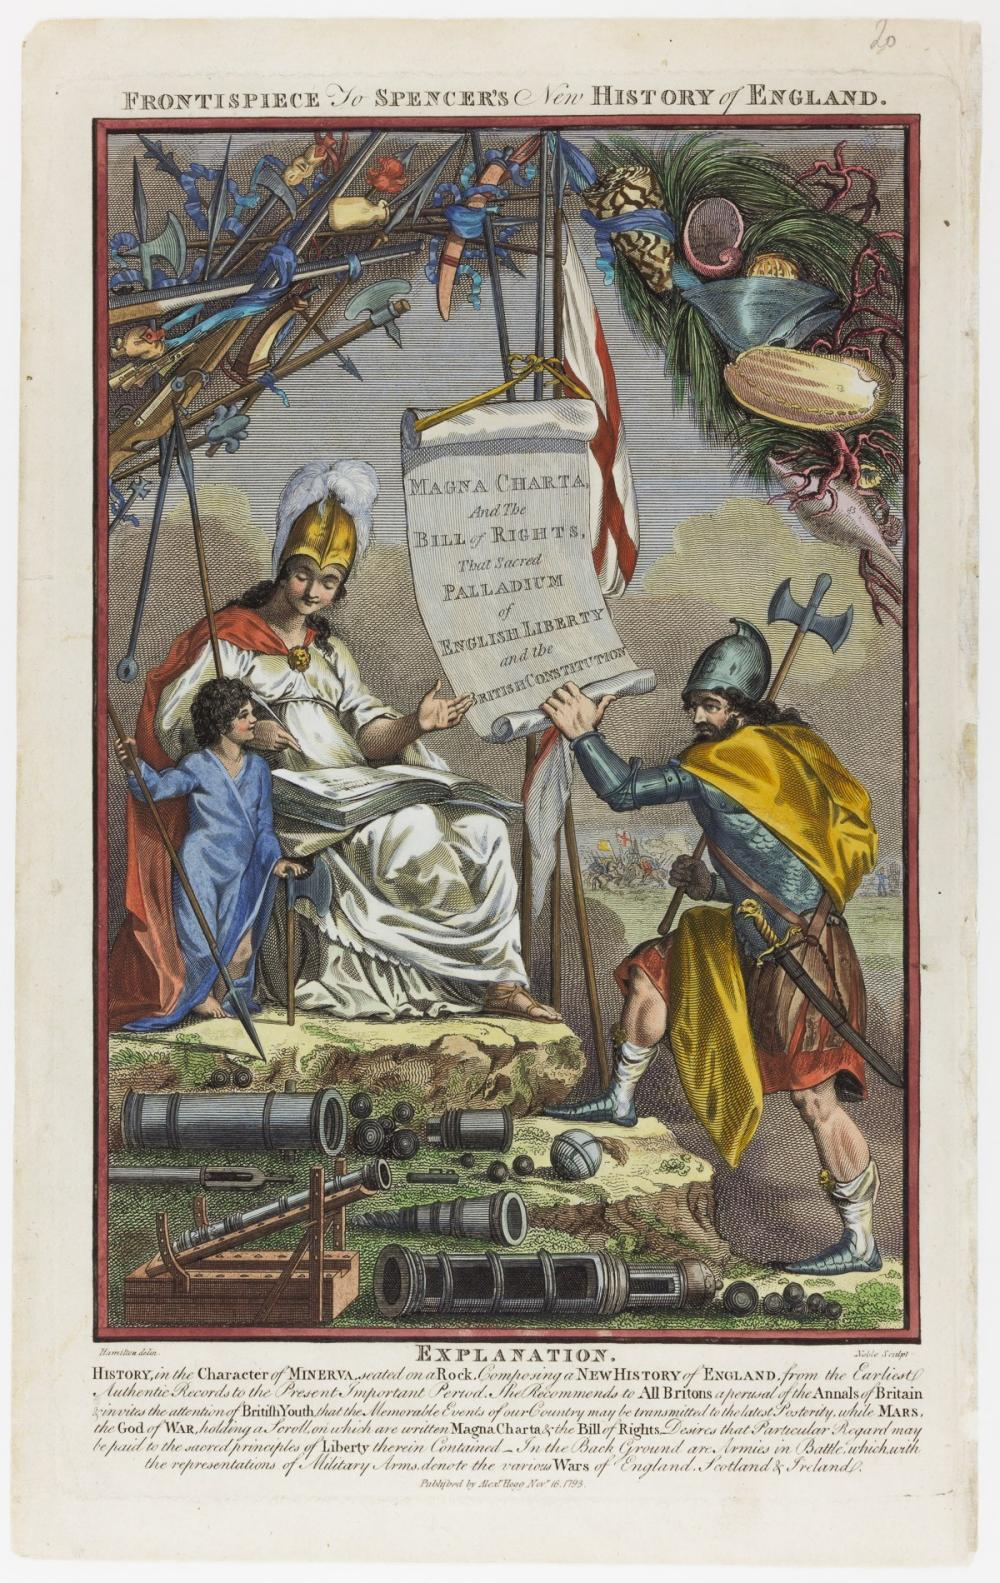 PATRIOTIC FRONTISPIECE ENGRAVING FOR SPENCER'S NEW HISTORY OF ENGLAND